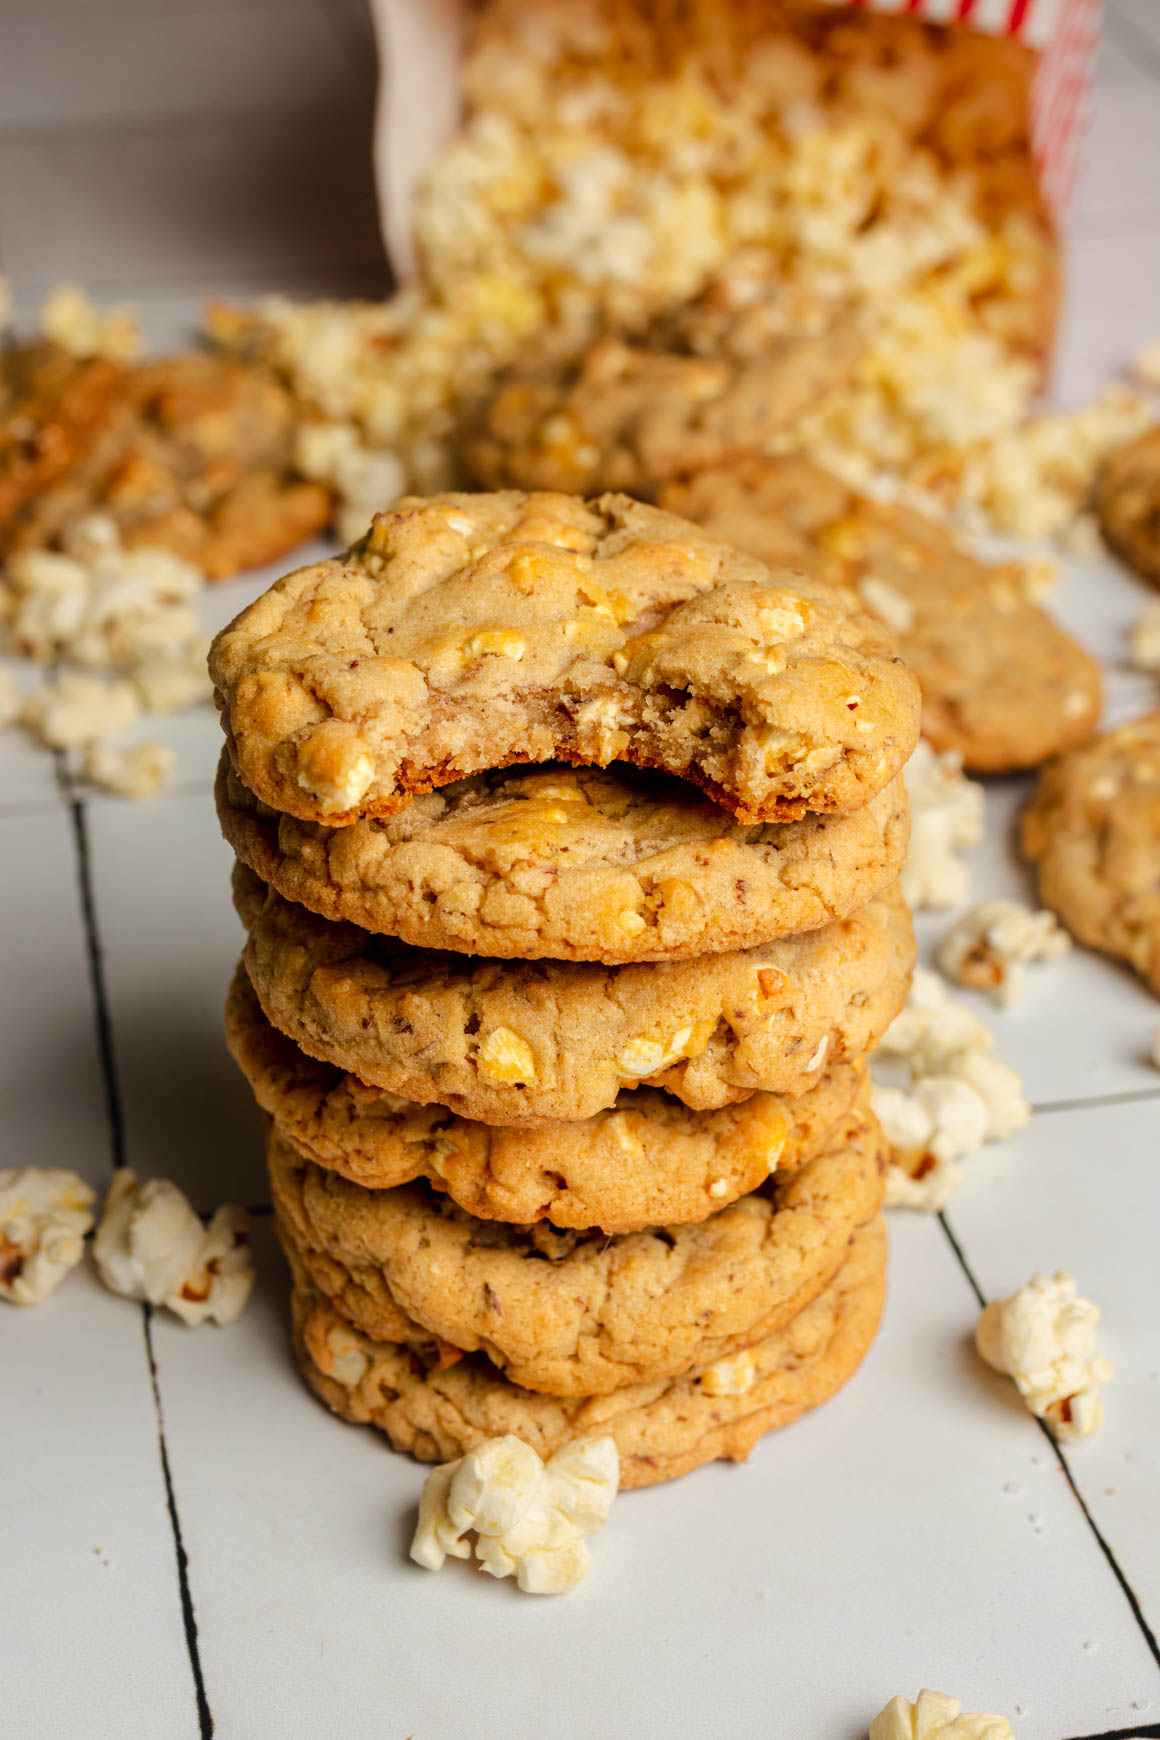 Stack of cookies, with the top one that has a bite out of it. A bag of popcorn is spilling out in the background.